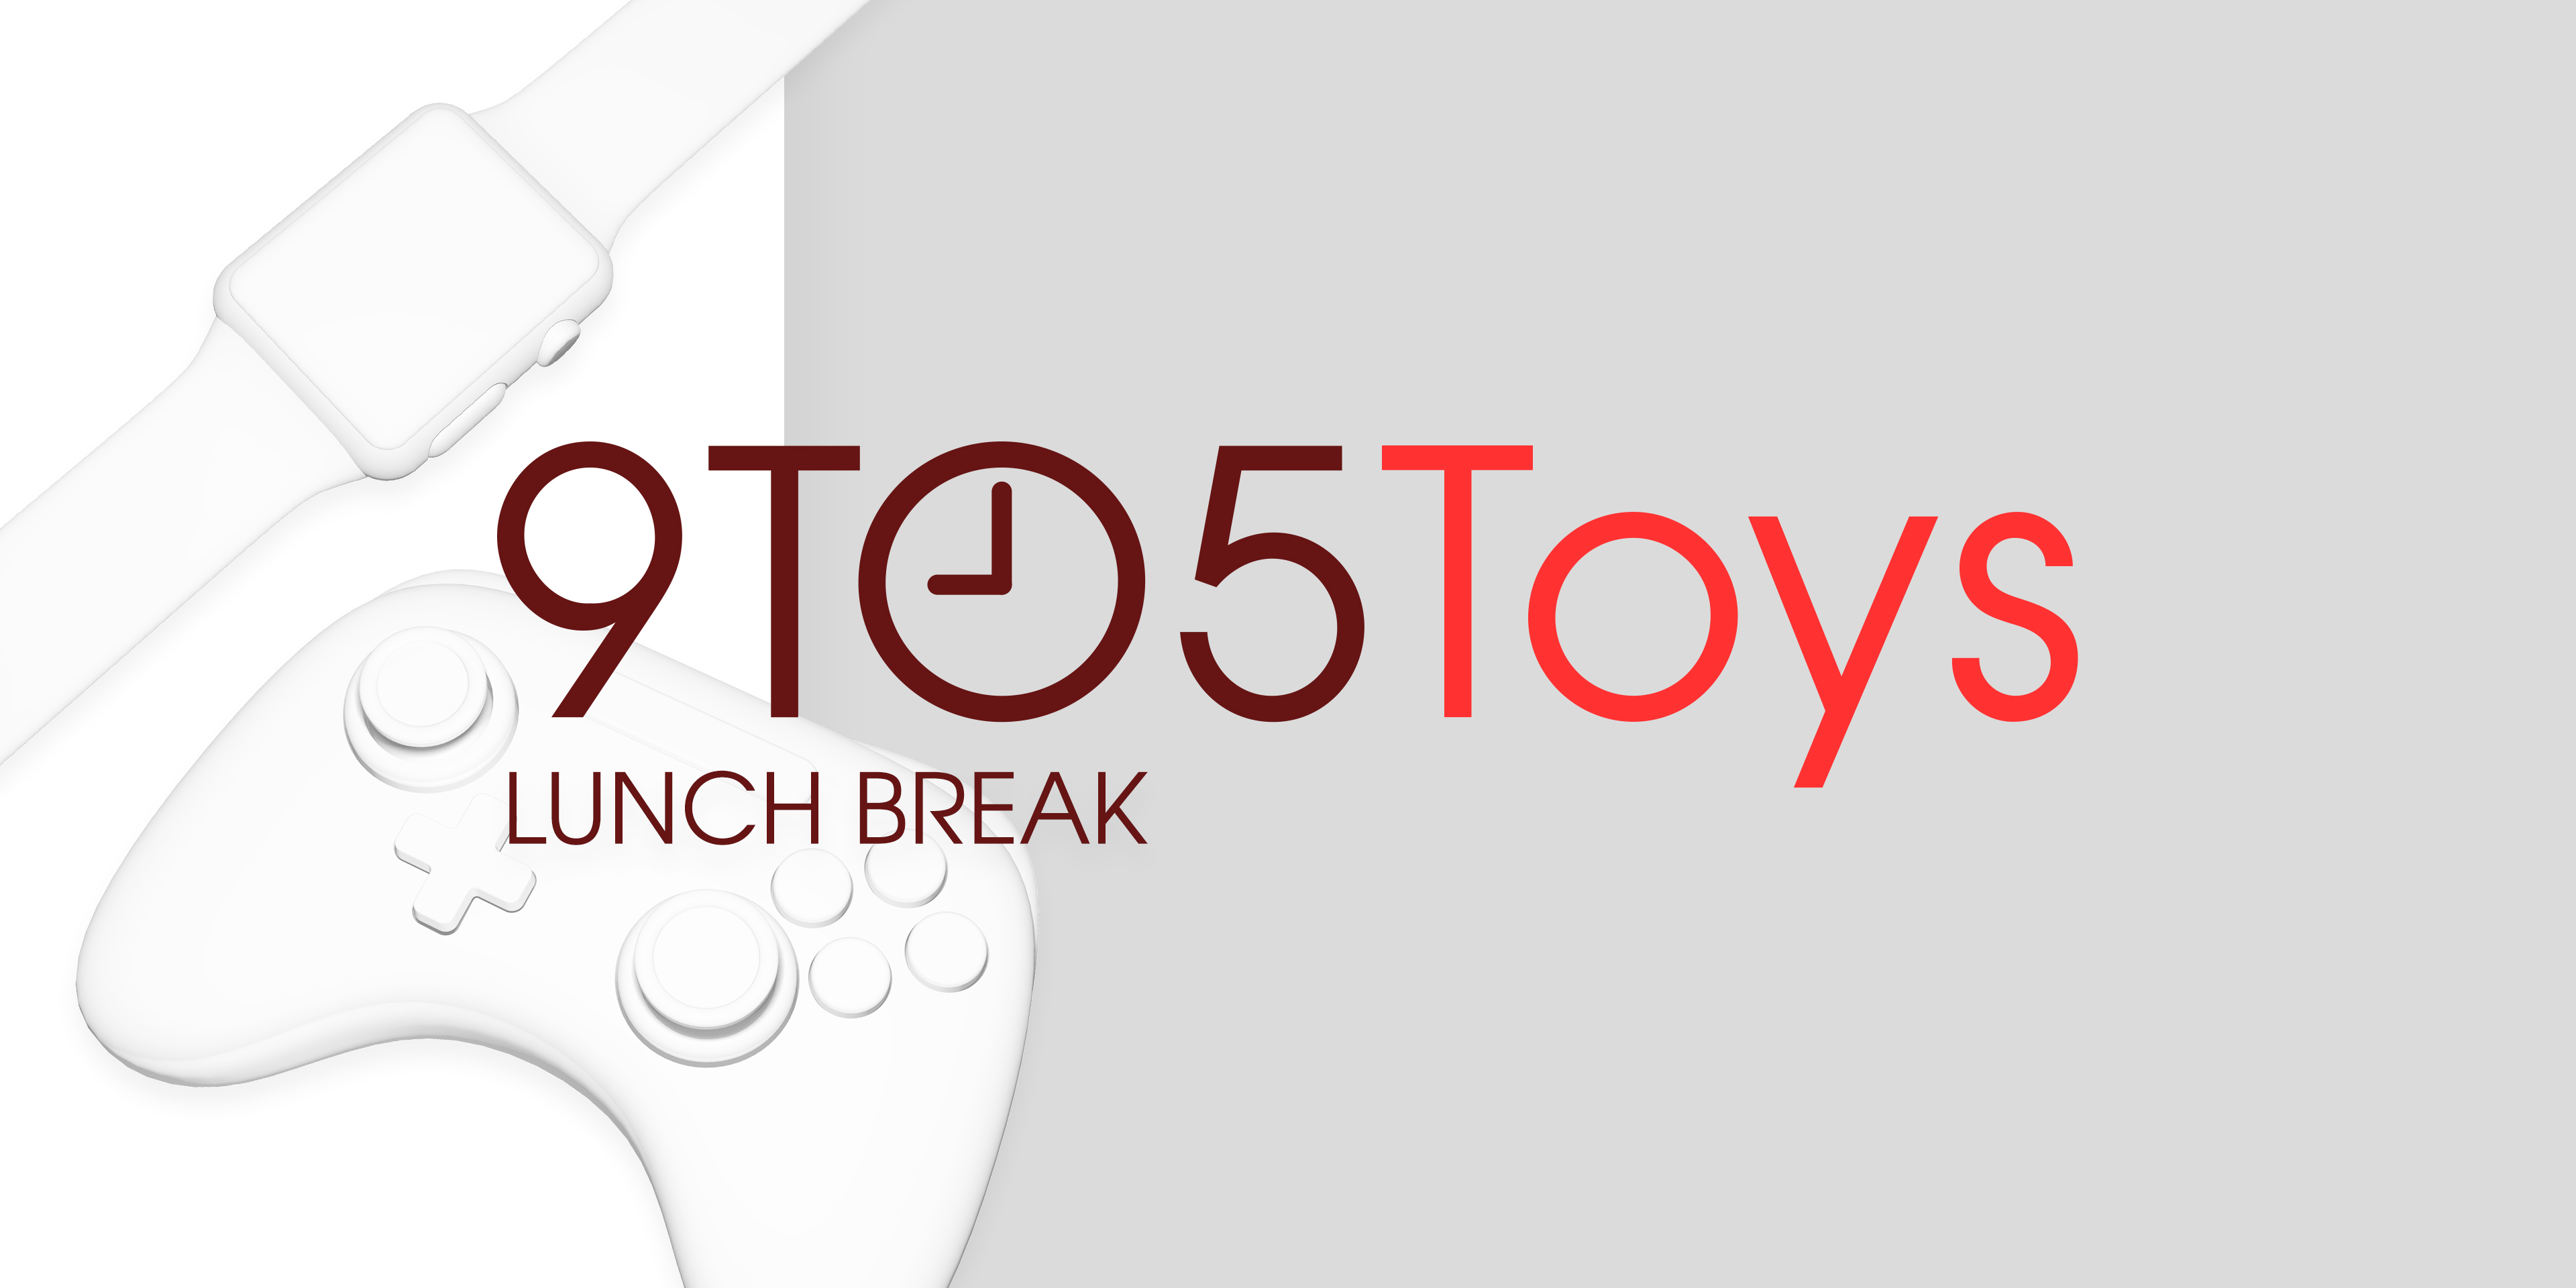 9to5toys lunch break iphone xr pre order deals lexar lightning flash drive 25 insignia homekit light switch 20 more